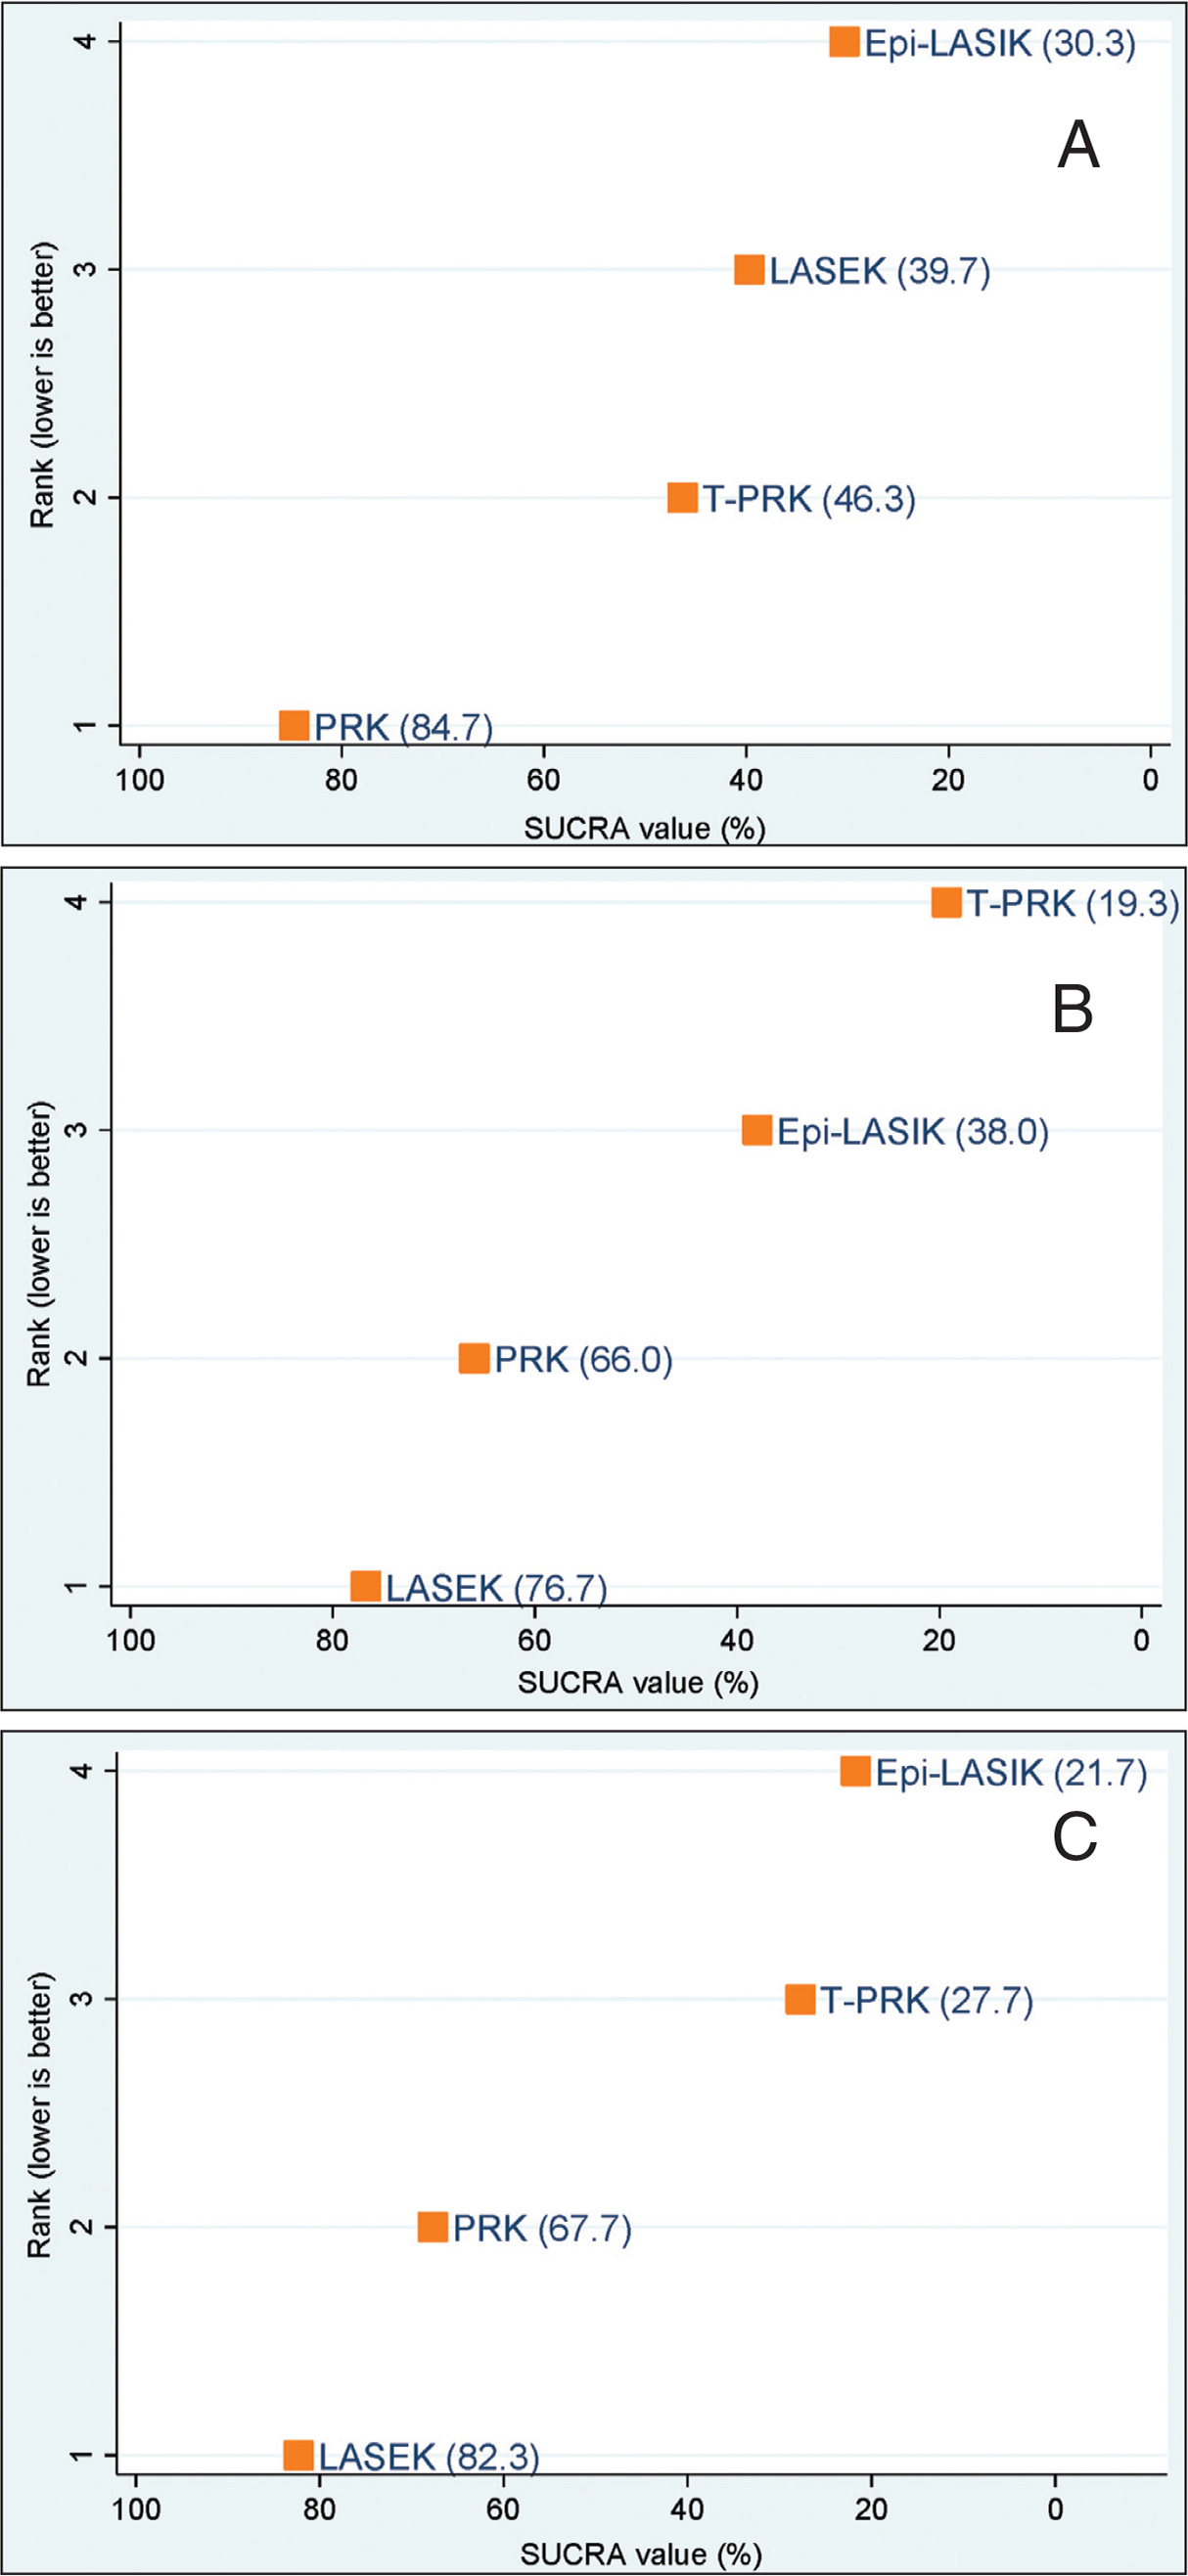 Ranking plot of procedures based on surface under the cumulative ranking curve (SUCRA) values for (A) postoperative haze scores, (B) haze grade of 0.5 or higher, and (C) haze grade of 1.0. epi-LASIK = epithelial laser in situ keratomileusis; LASEK = laser epithelial keratomileusis; PRK = photorefractive keratectomy; T-PRK = transepithelial photorefractive keratectomy